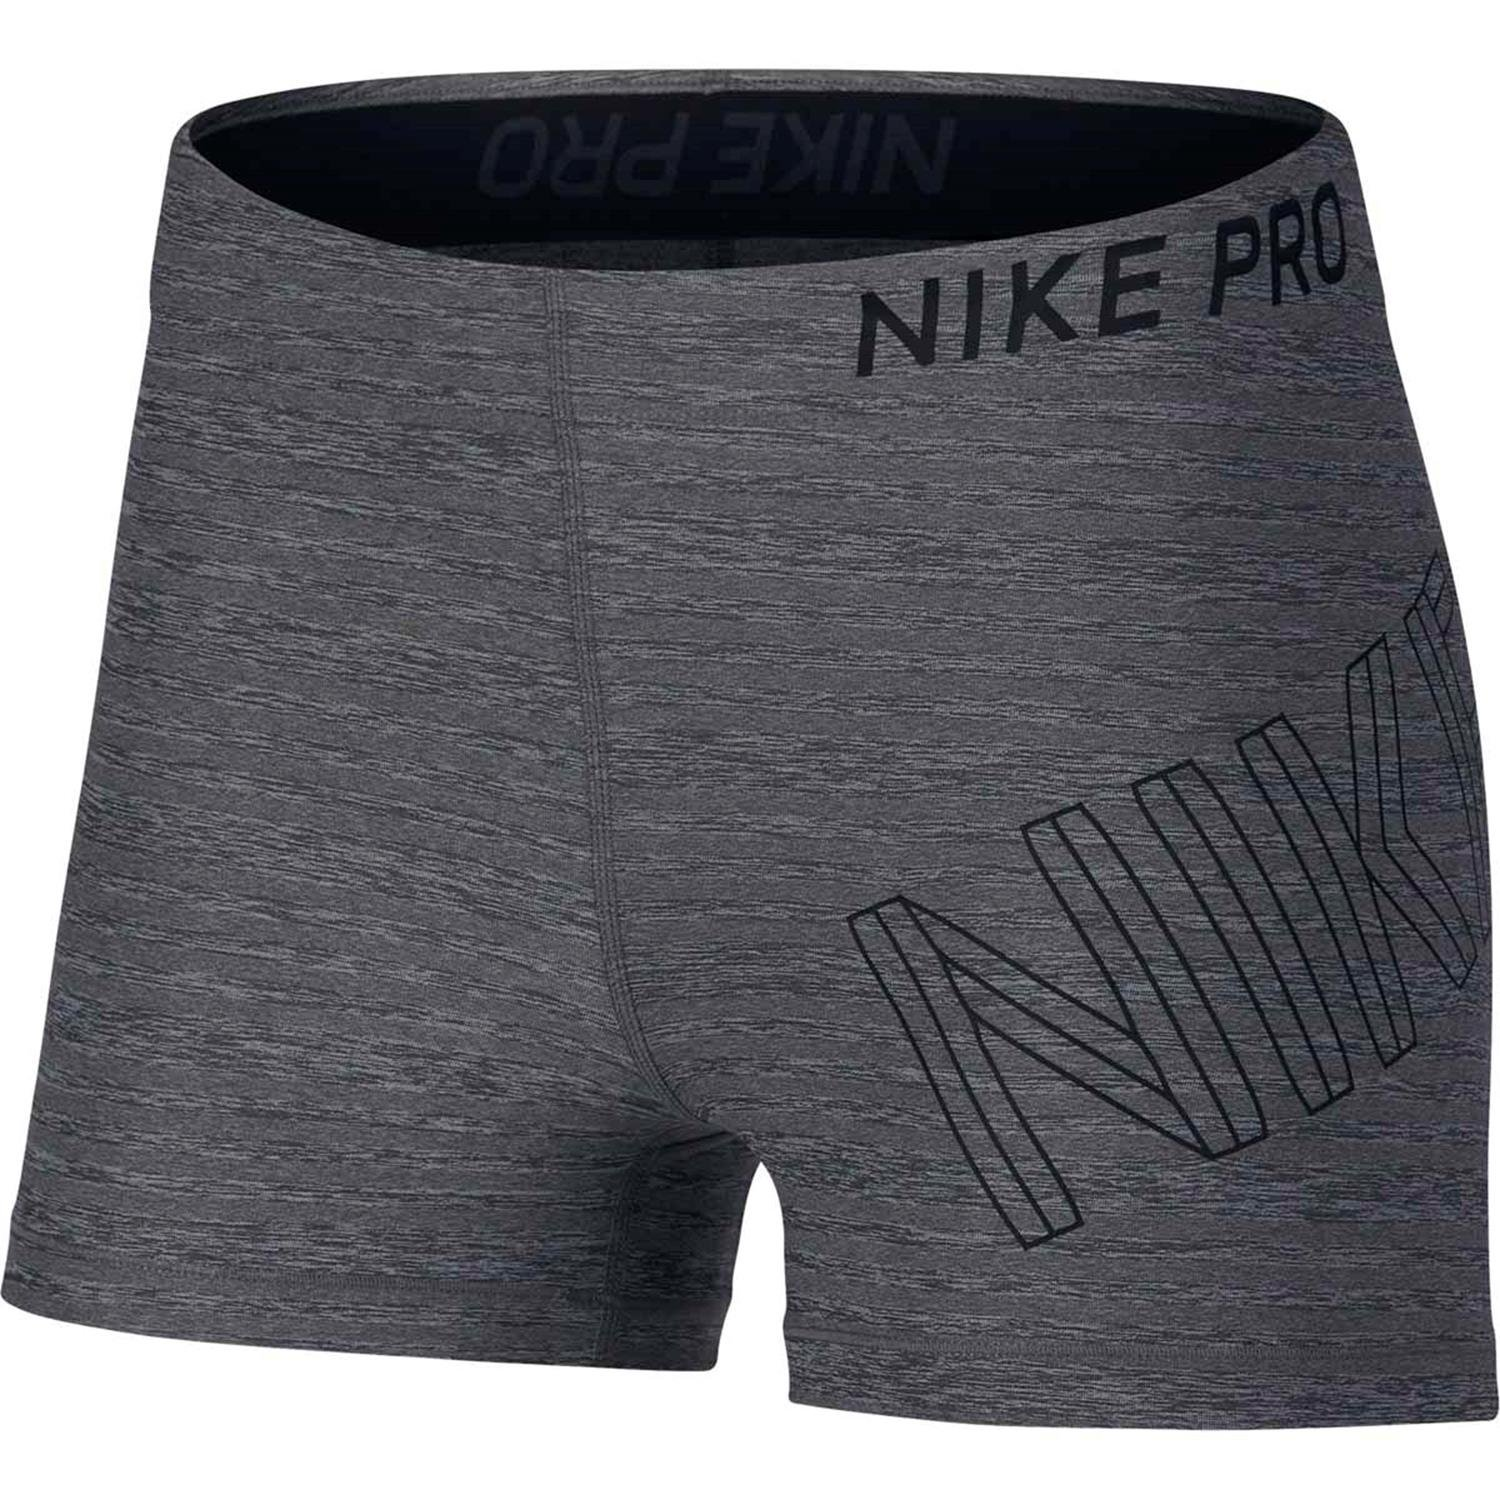 NIKE Pro Womens Training Shorts 3IN,Carbon Heather,One Size by Nike